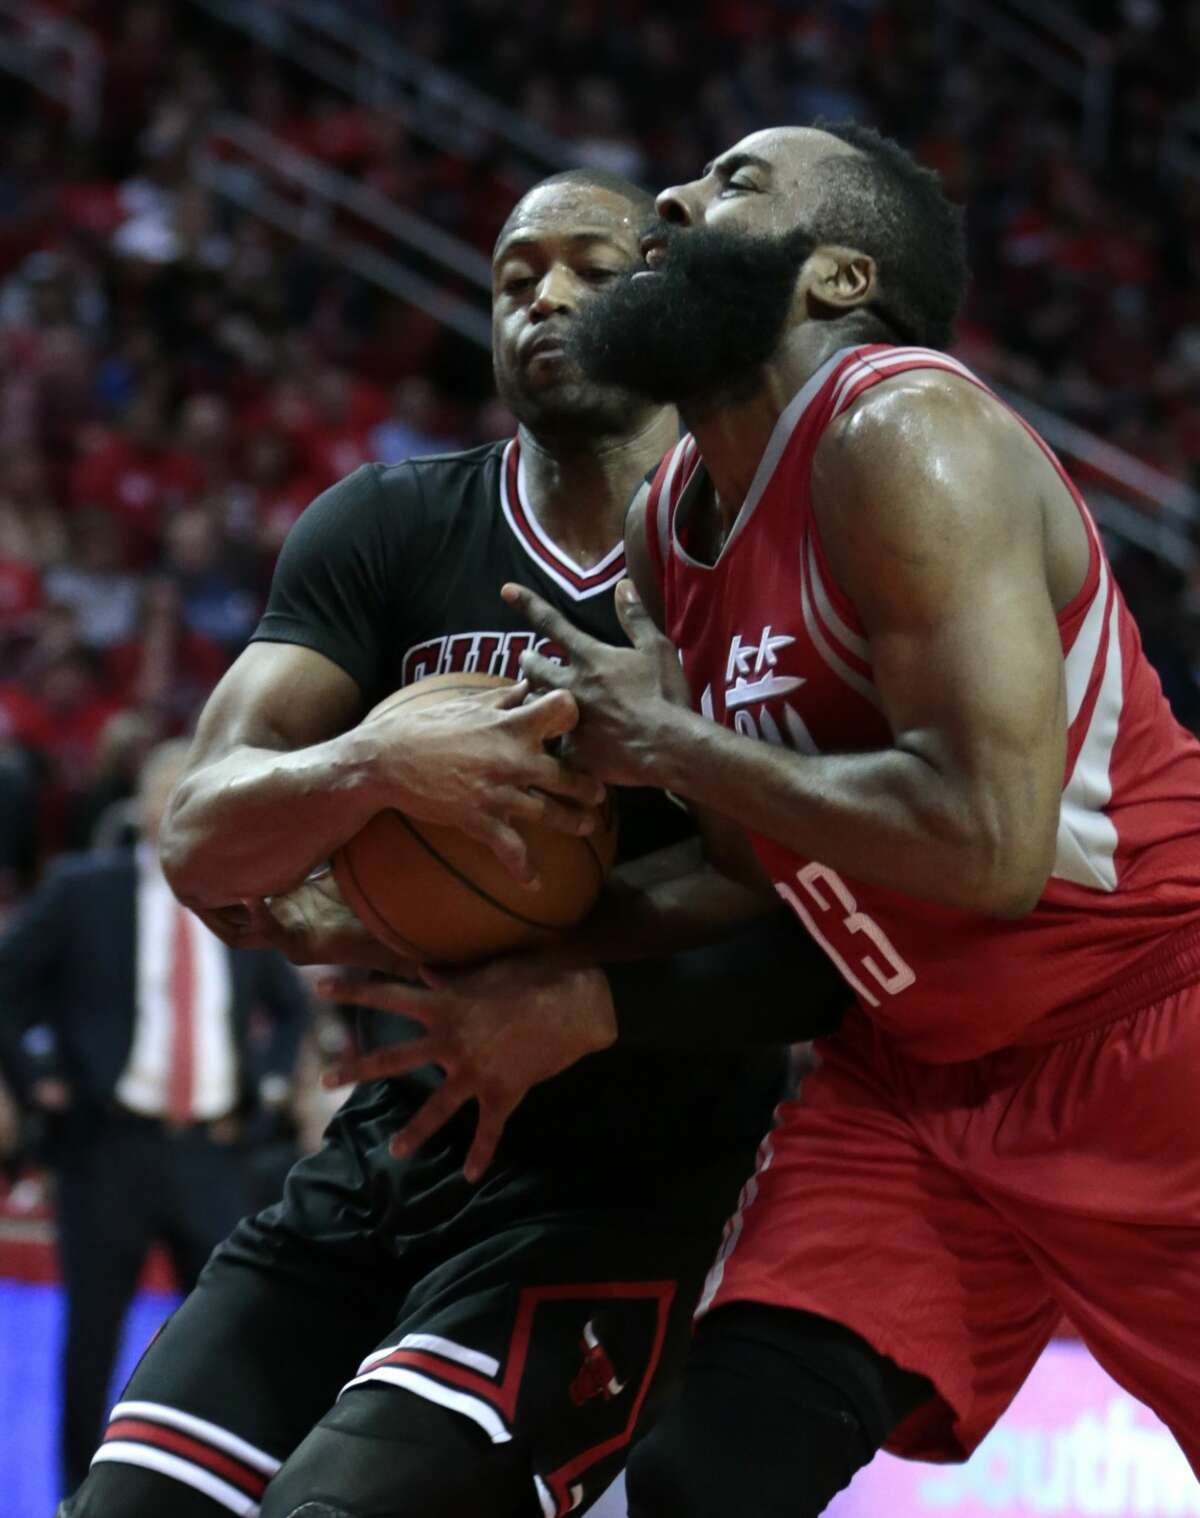 Chicago Bulls guard Dwyane Wade (3) and Houston Rockets guard James Harden (13) fight for a ball during the fourth quarter of an NBA basketball game at Toyota Center on Friday, Feb. 3, 2017, in Houston. ( Brett Coomer / Houston Chronicle )